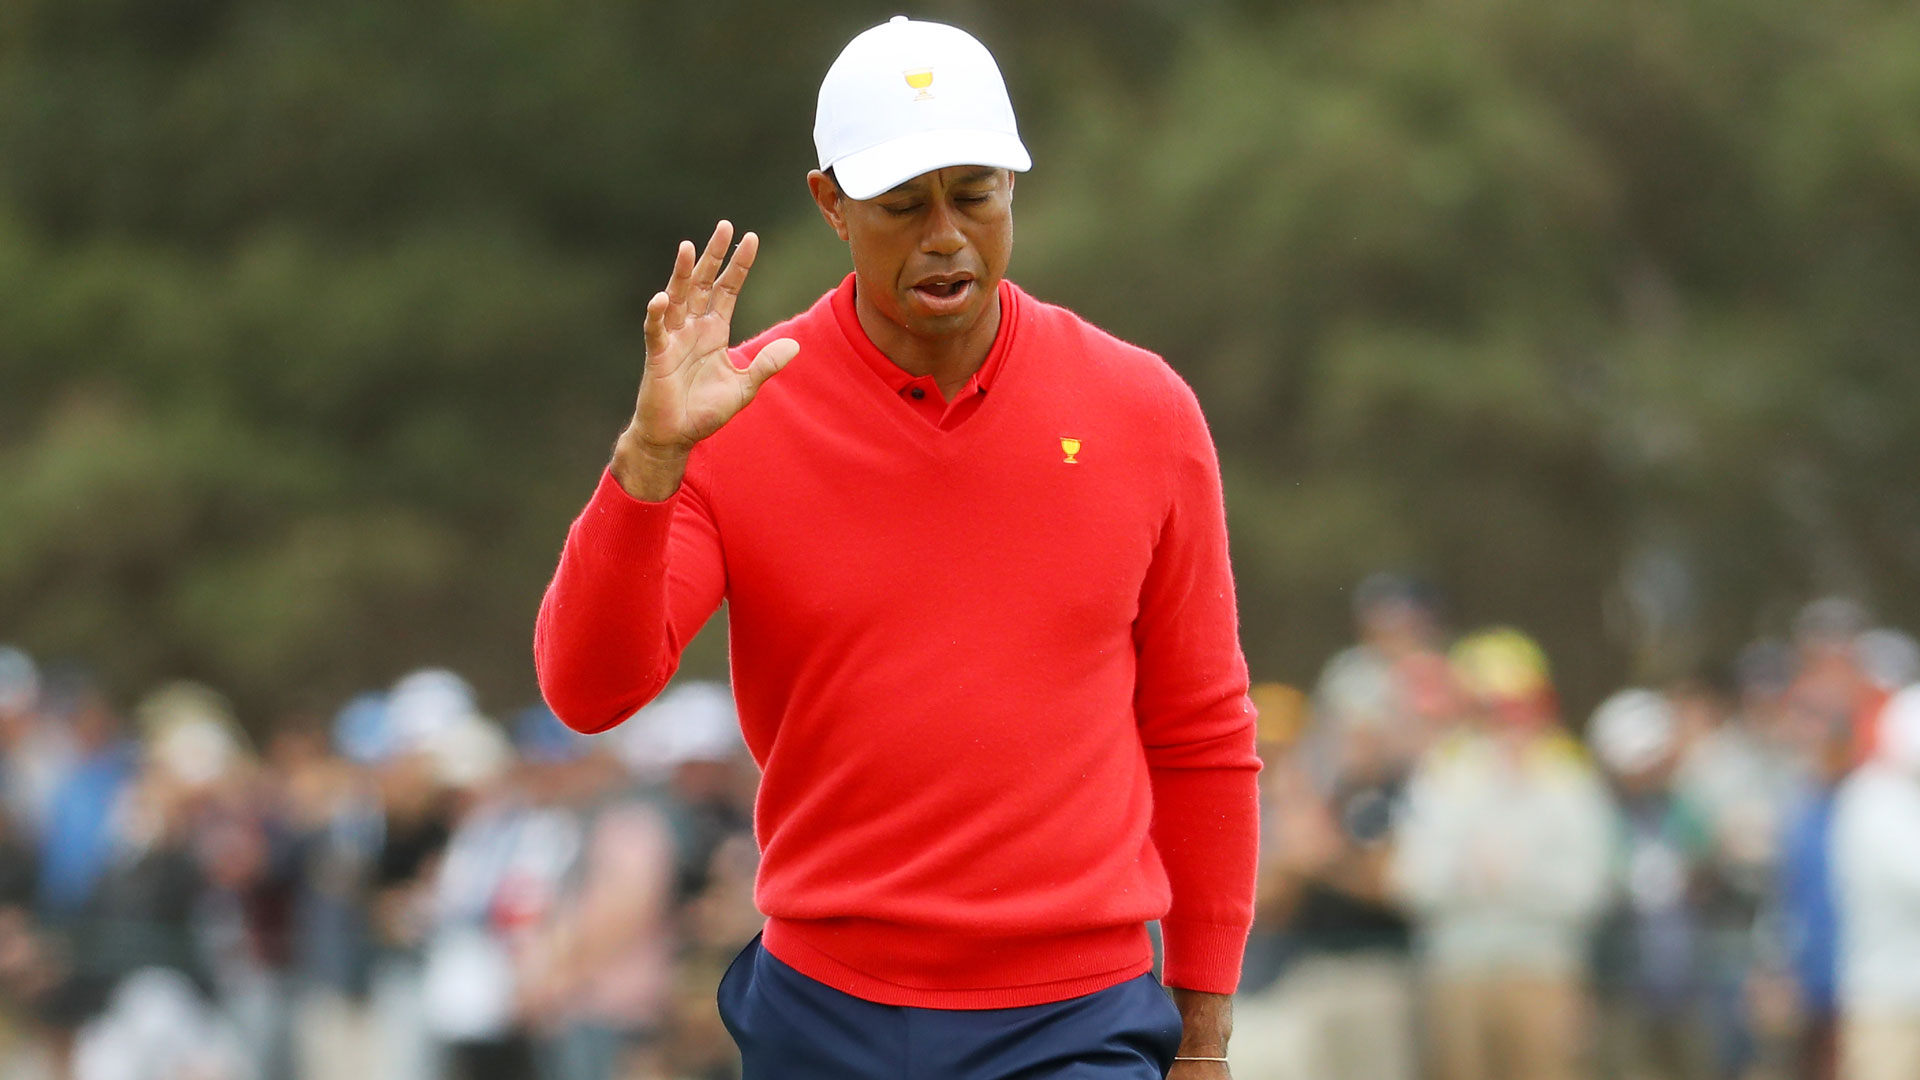 Tiger Woods among 10 finalists for 2021 World Golf Hall of Fame